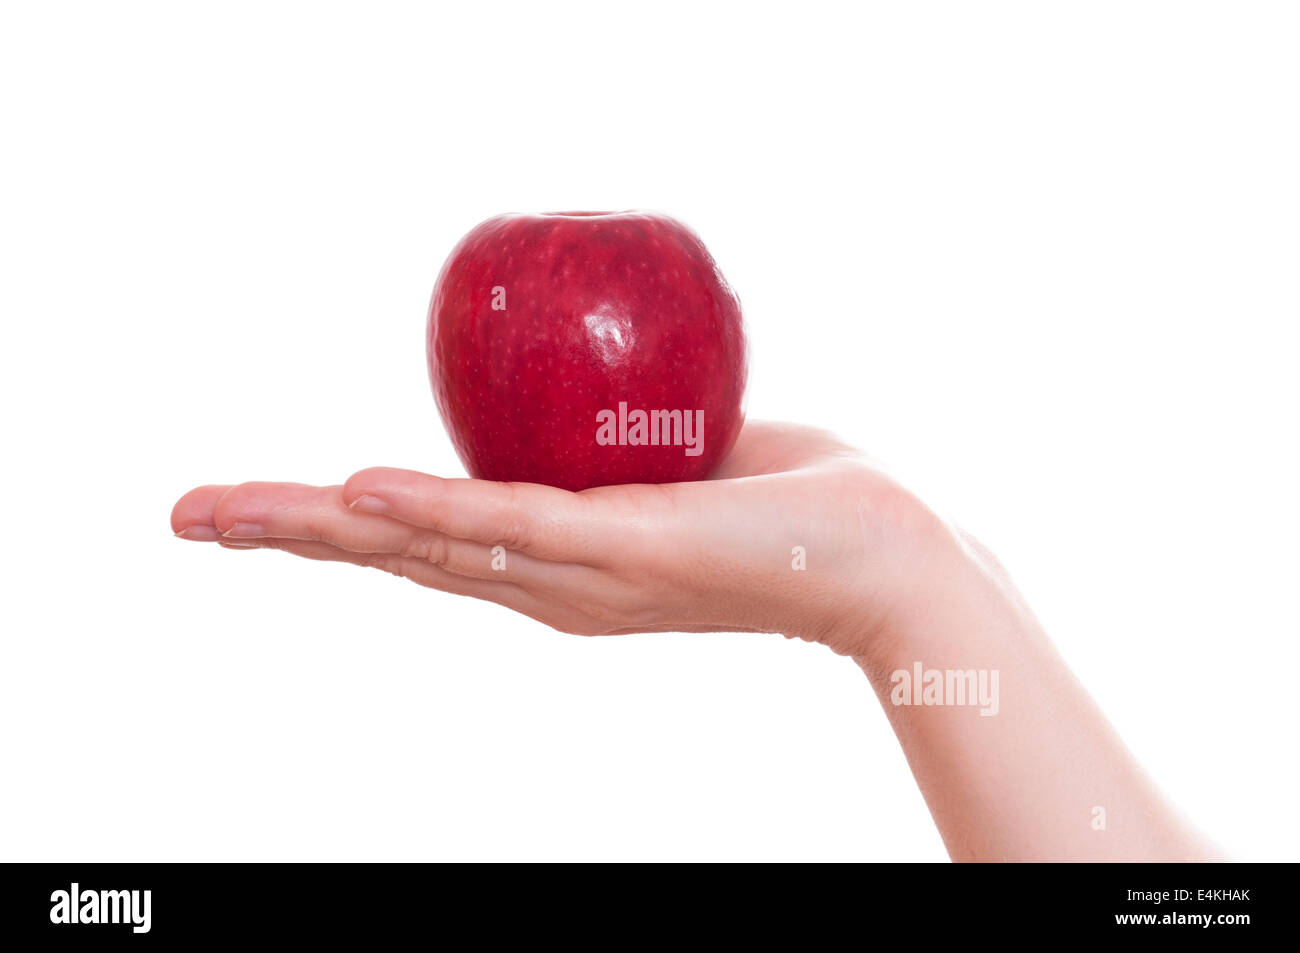 Red apple in a hand Stock Photo